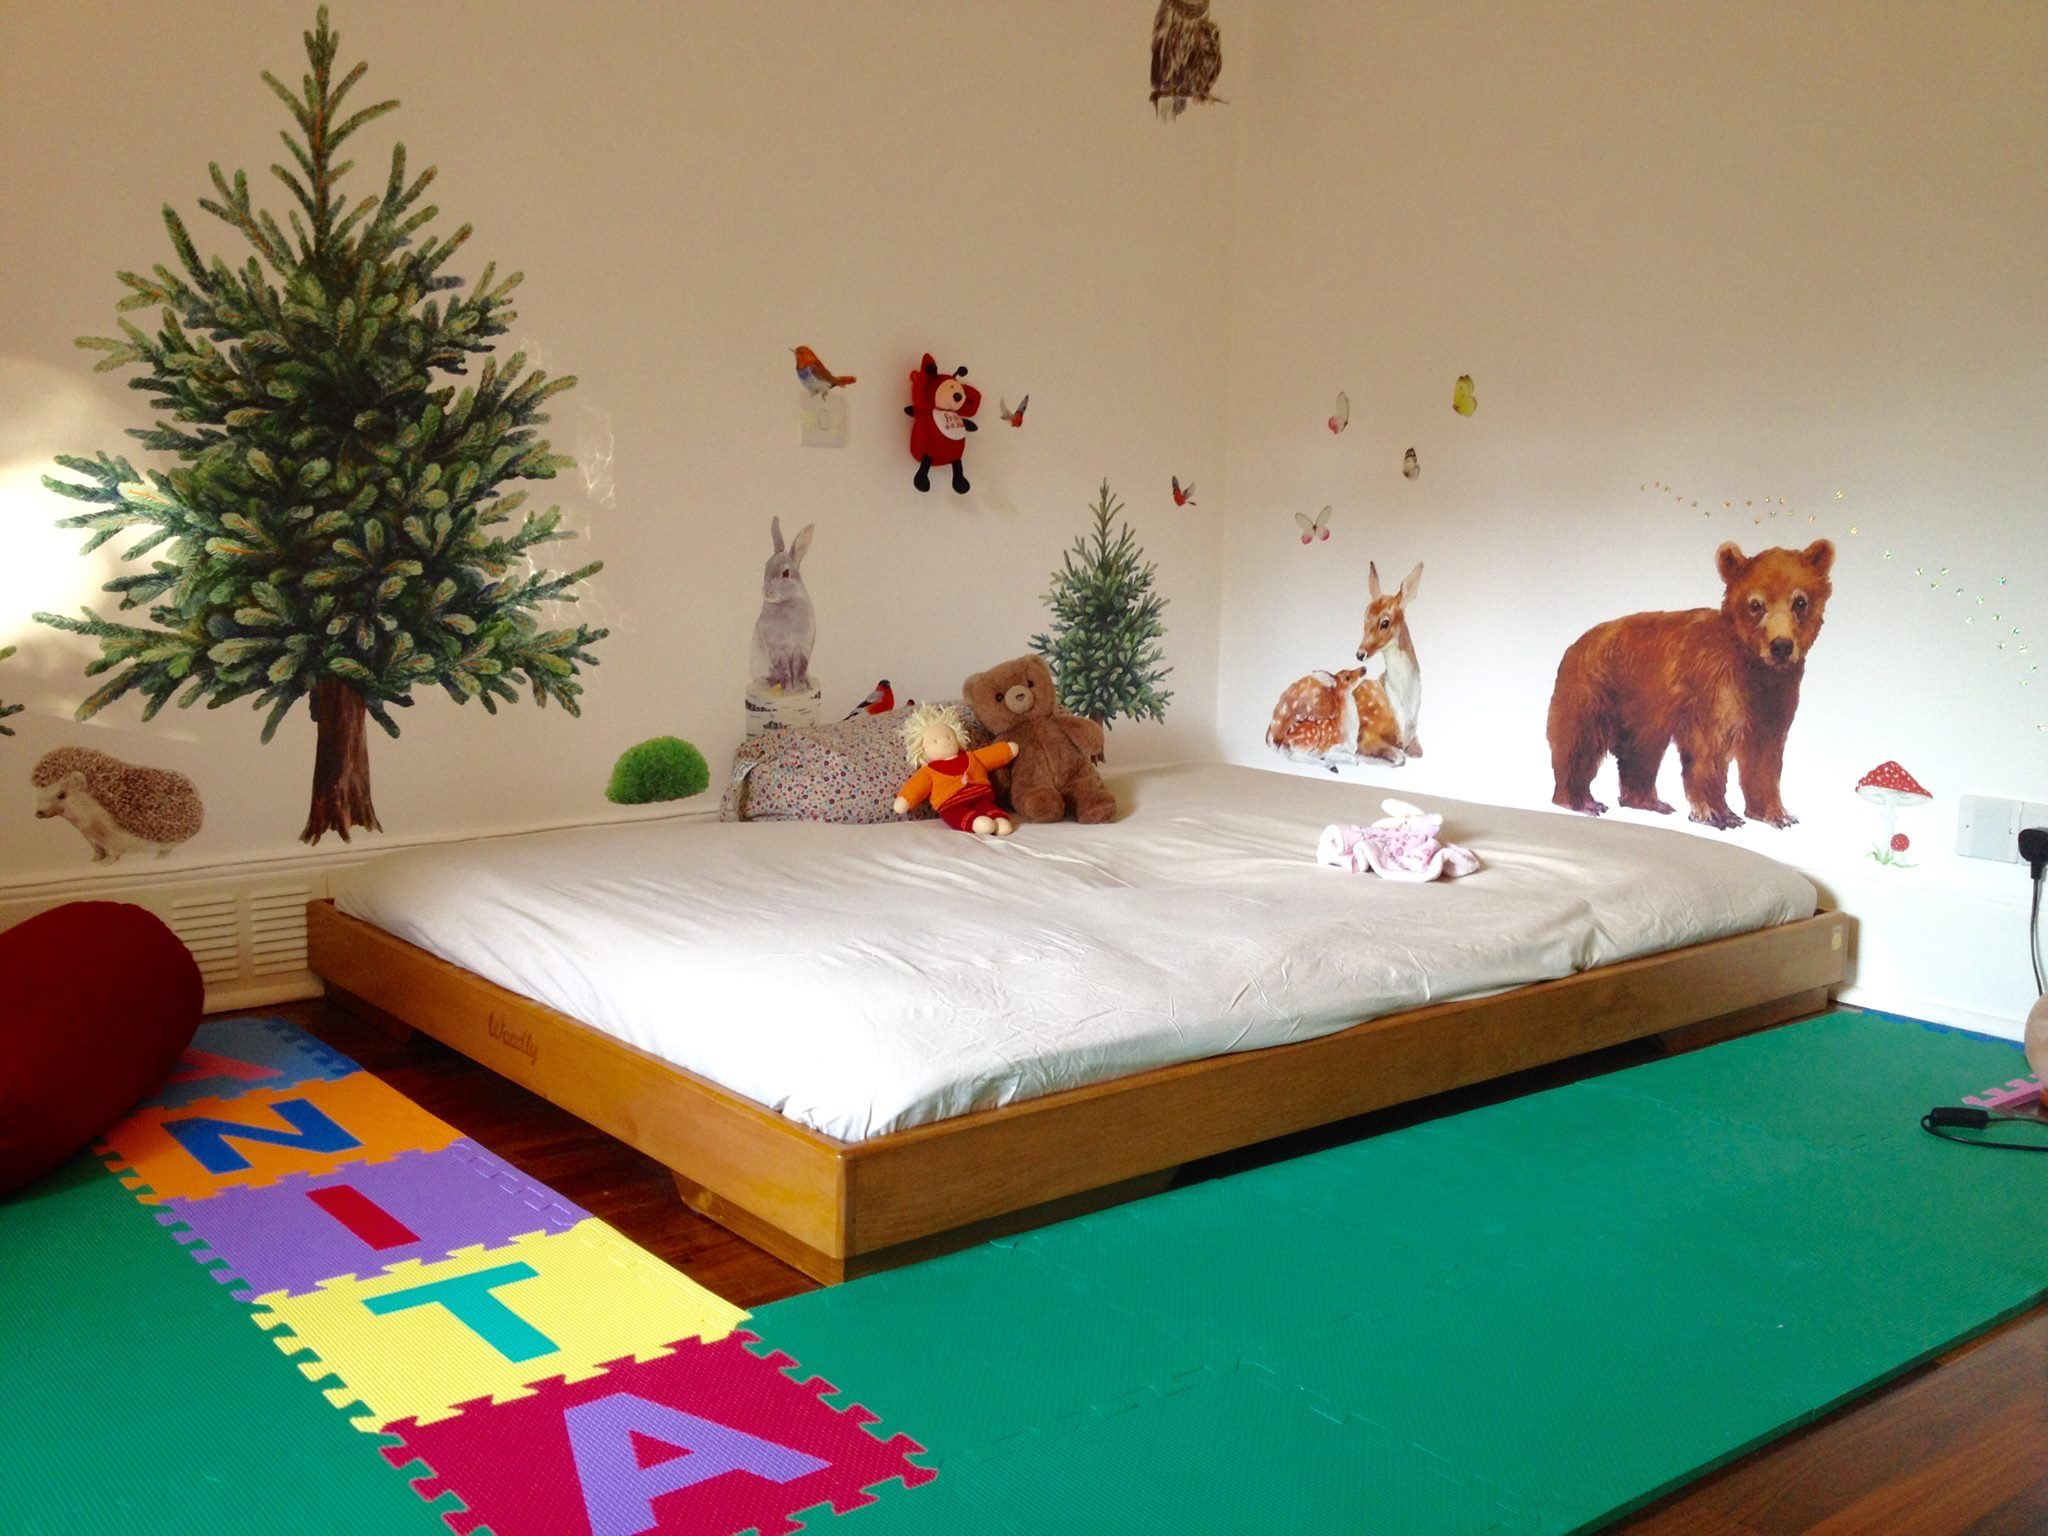 Montessori Floor Bed, Online Sales, Ecological Production Of Wooden Furniture